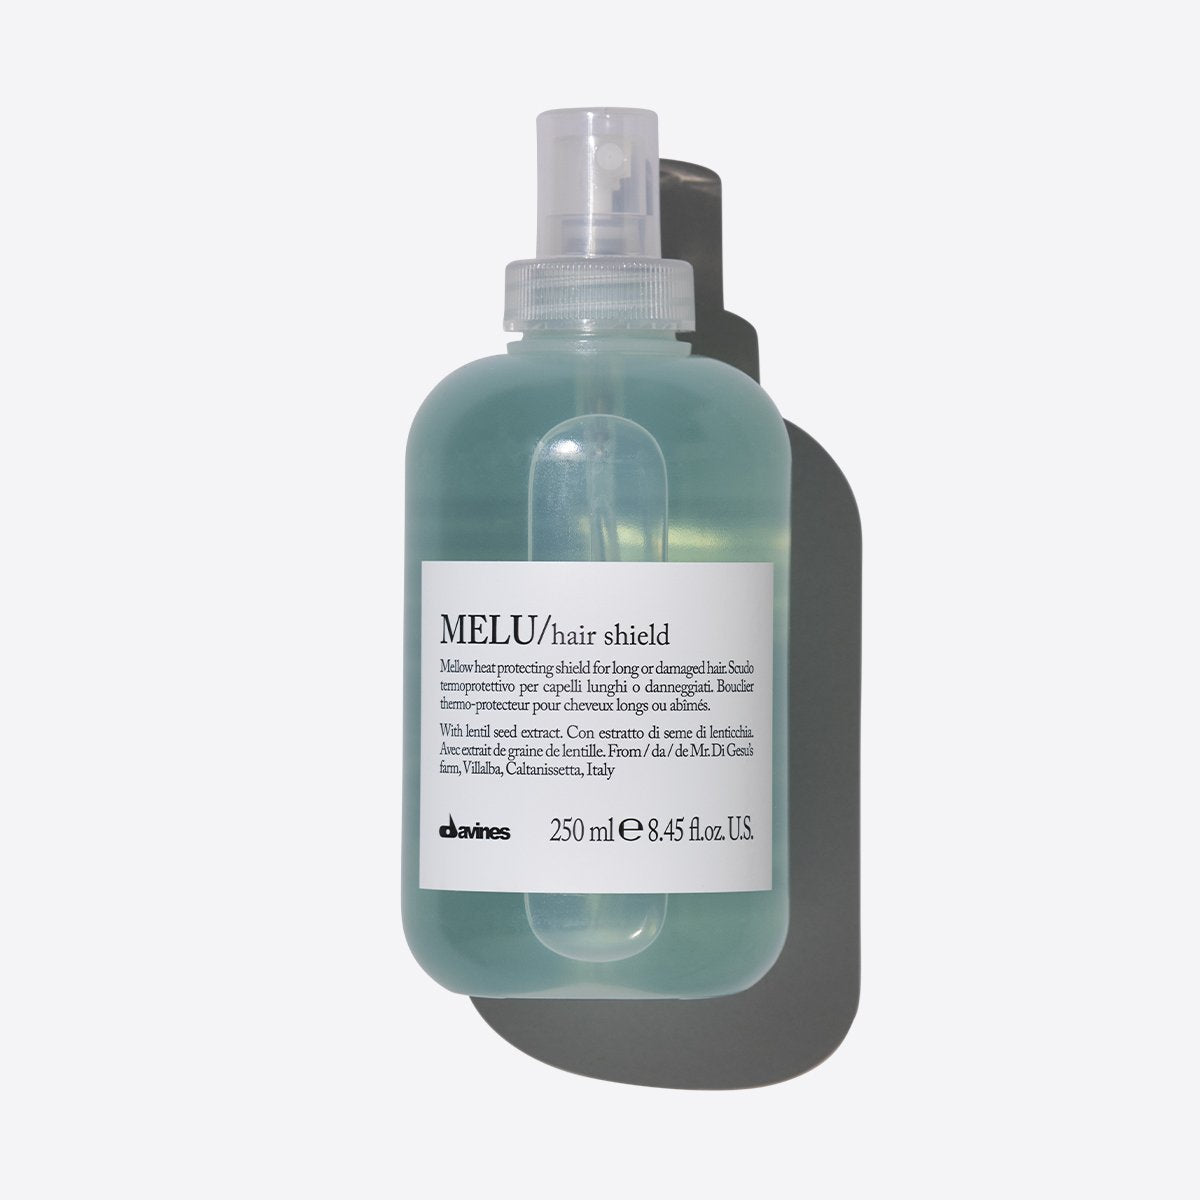 MELU Hair Shield by Davines